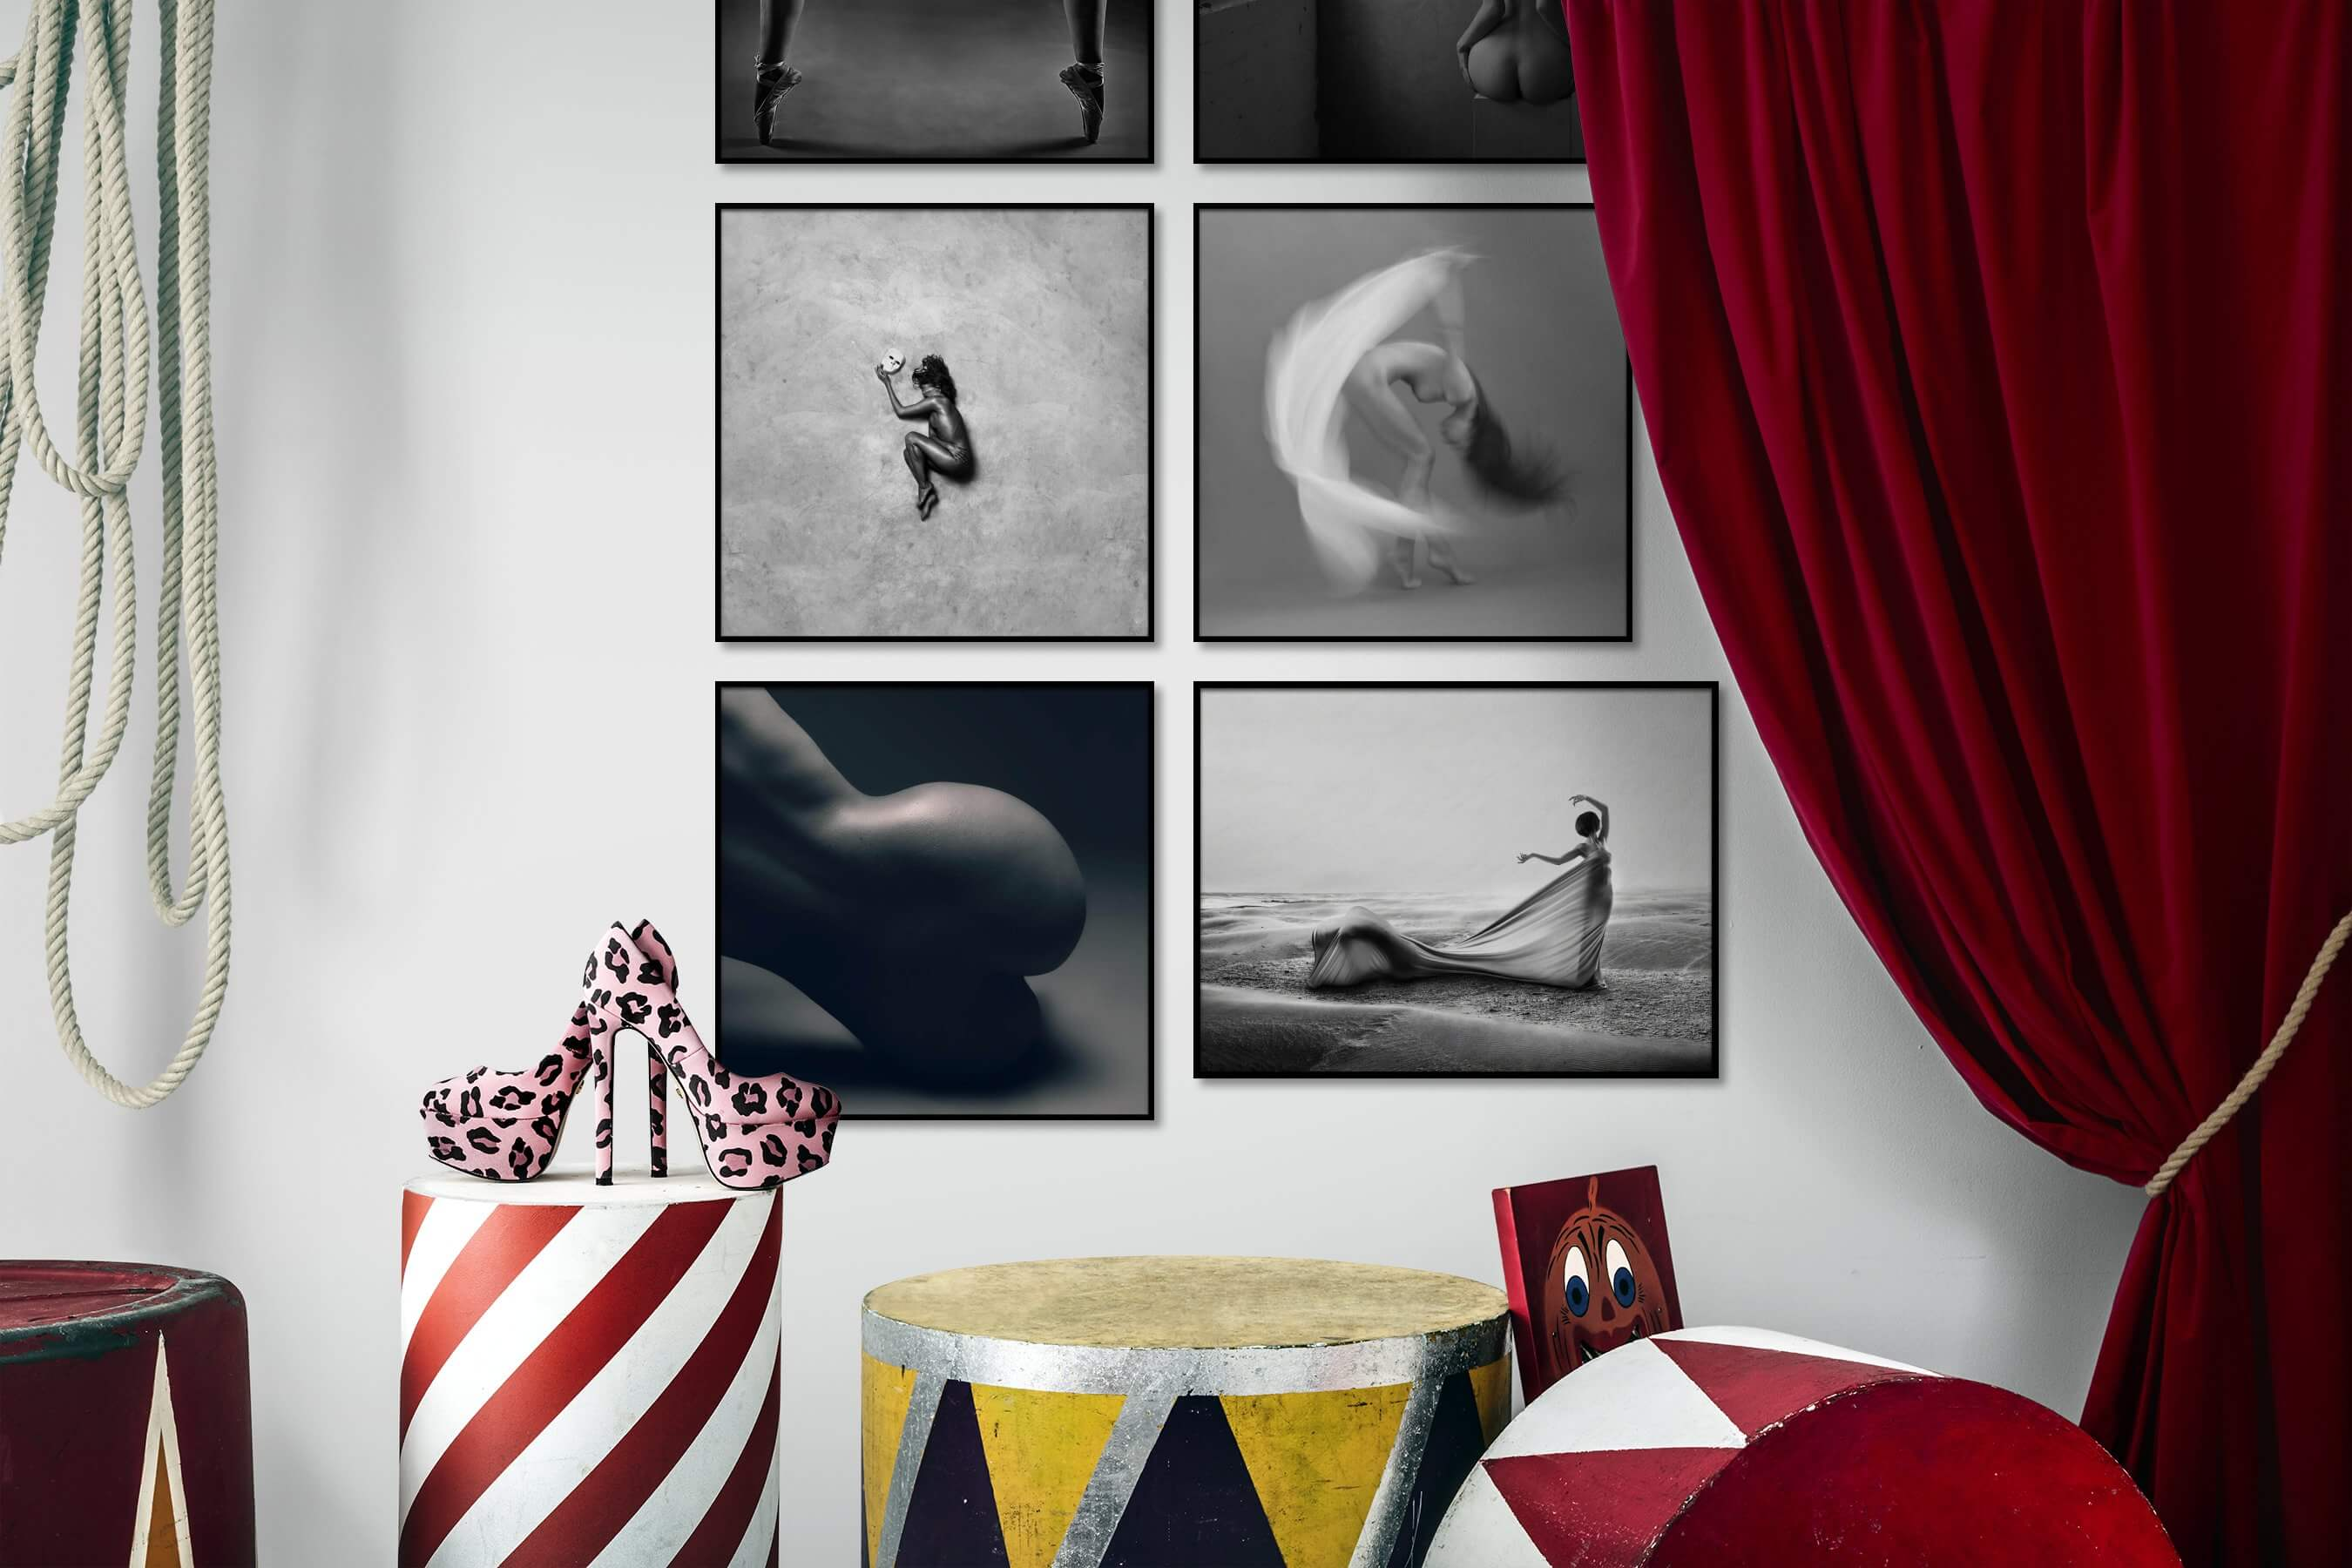 Gallery wall idea with six framed pictures arranged on a wall depicting Fashion & Beauty, Black & White, Artsy, For the Minimalist, Bold, and Beach & Water